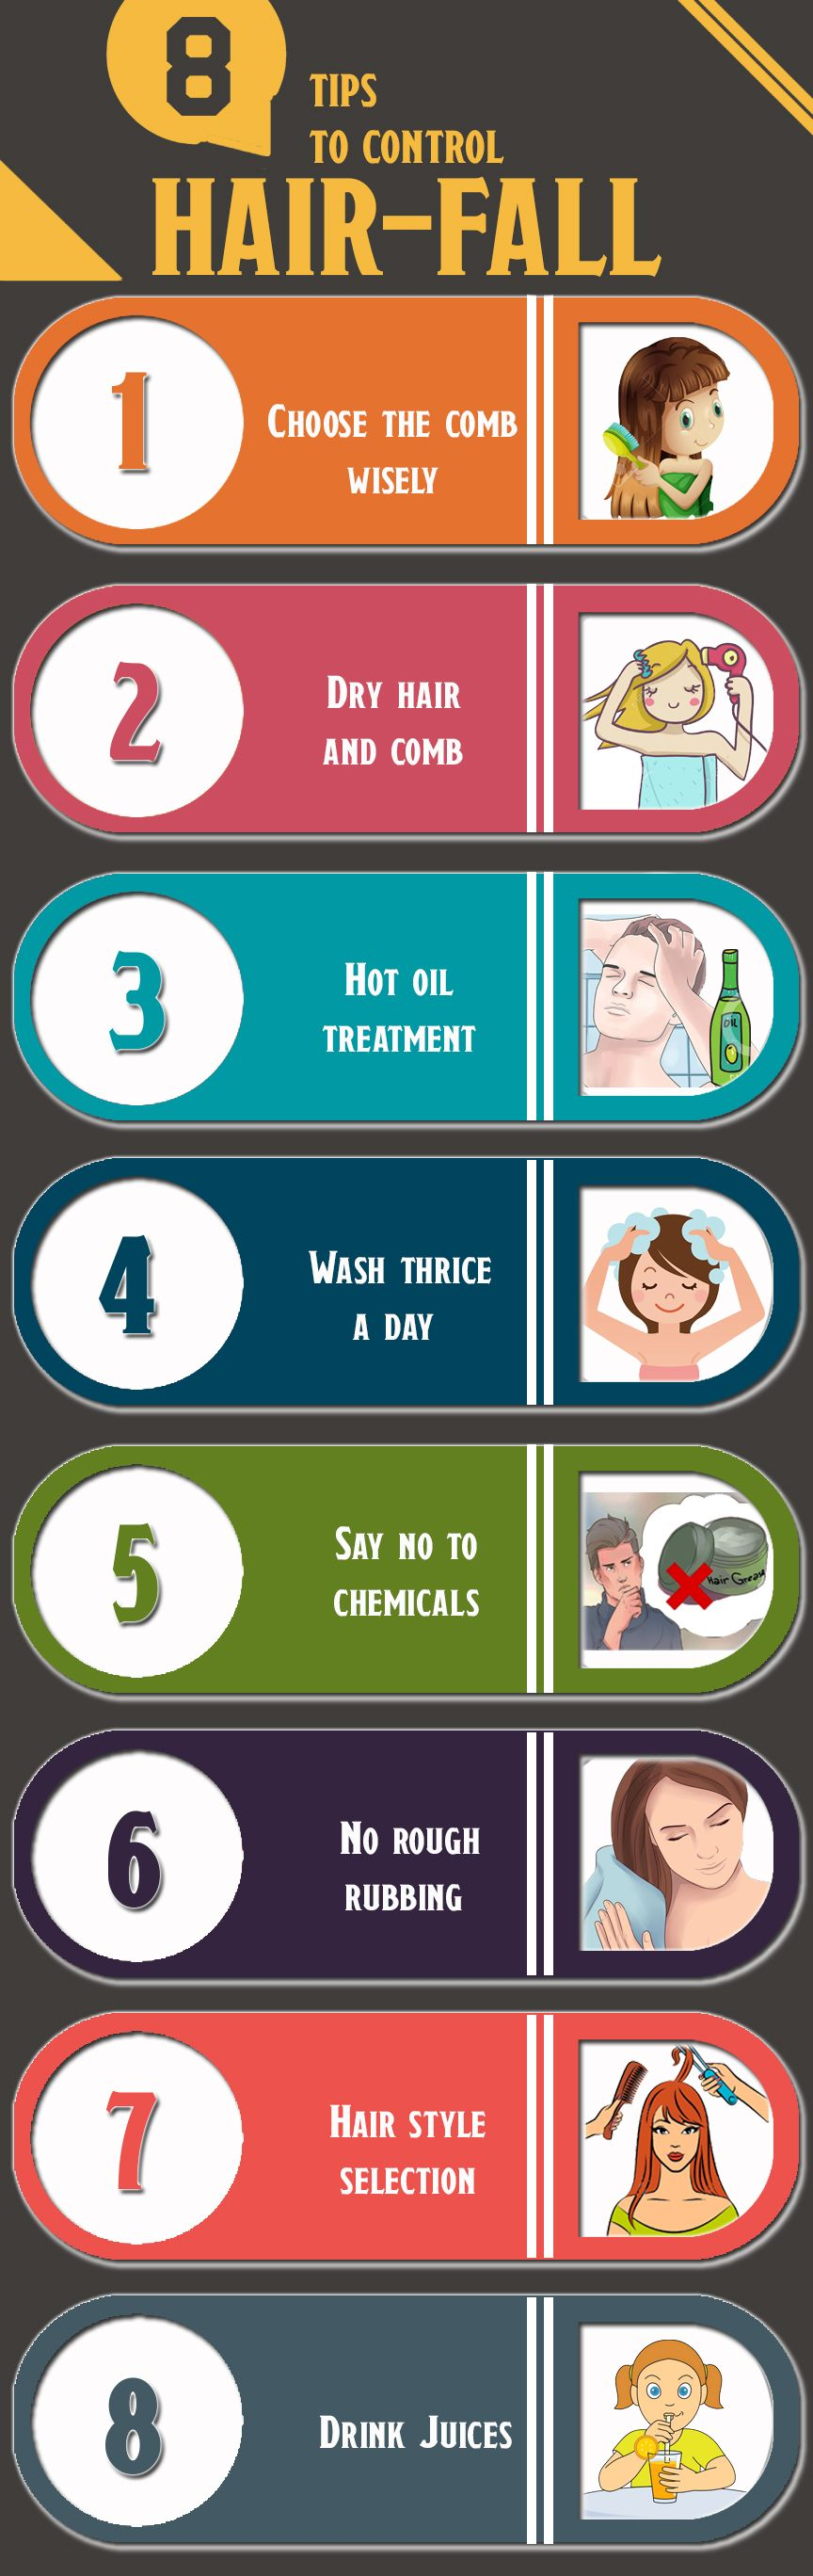 Tips to control hair fall